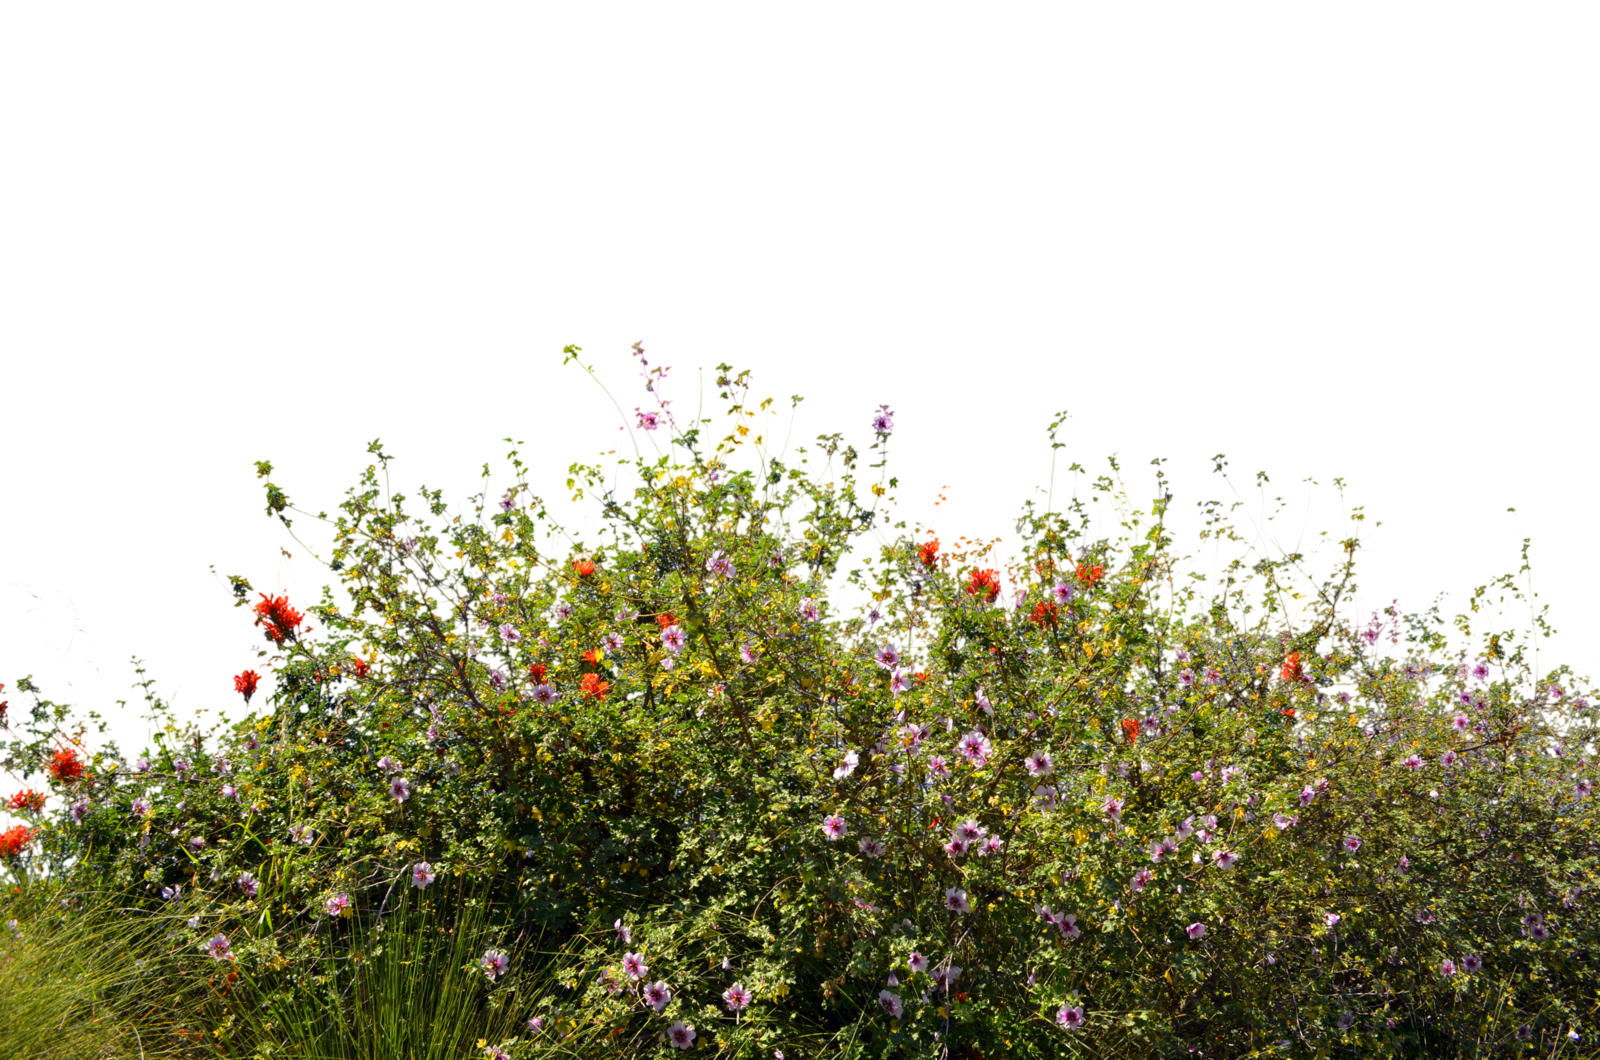 Download stock plower image png photoshop. Ground cover wild flowers